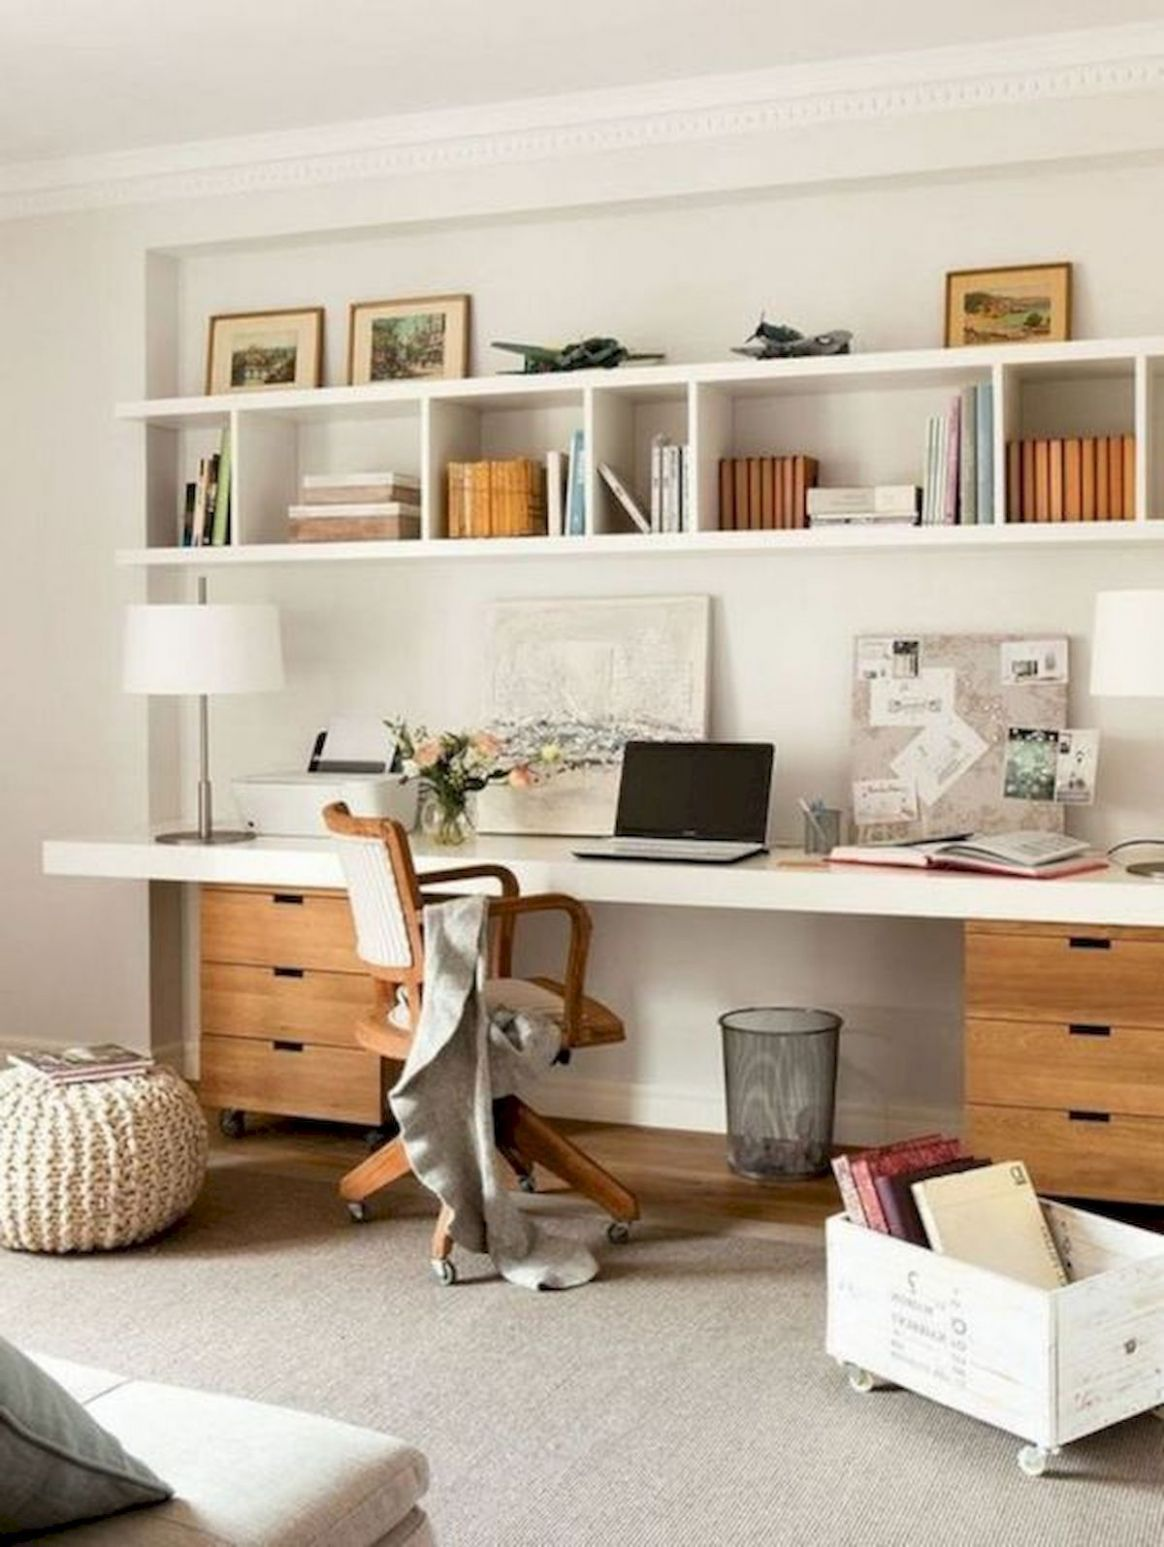 10 Incredible DIY Office Desk Design Ideas and Decor (With images ..